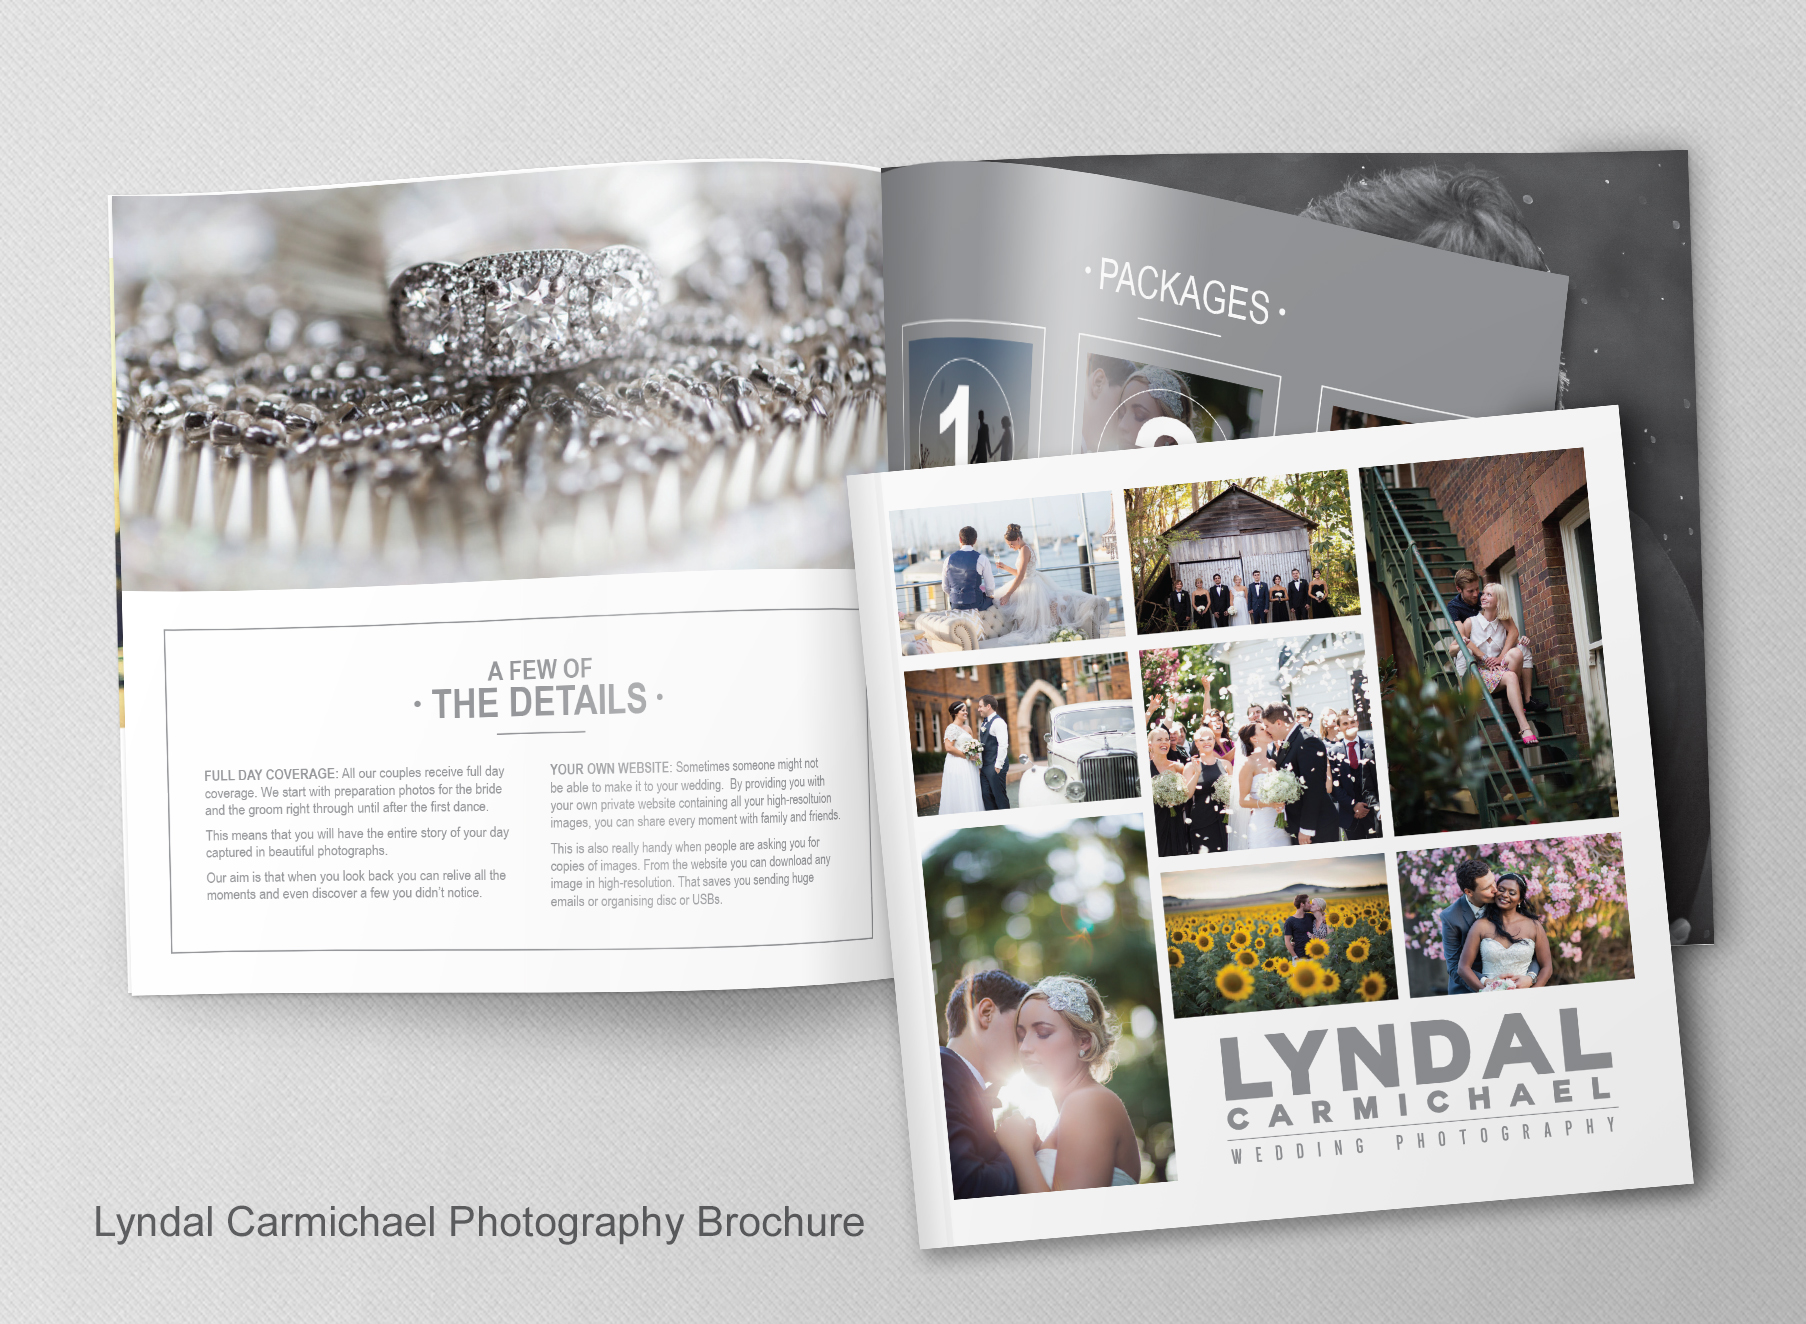 Lyndal Carmichael Brochure - Folio Graphic Design